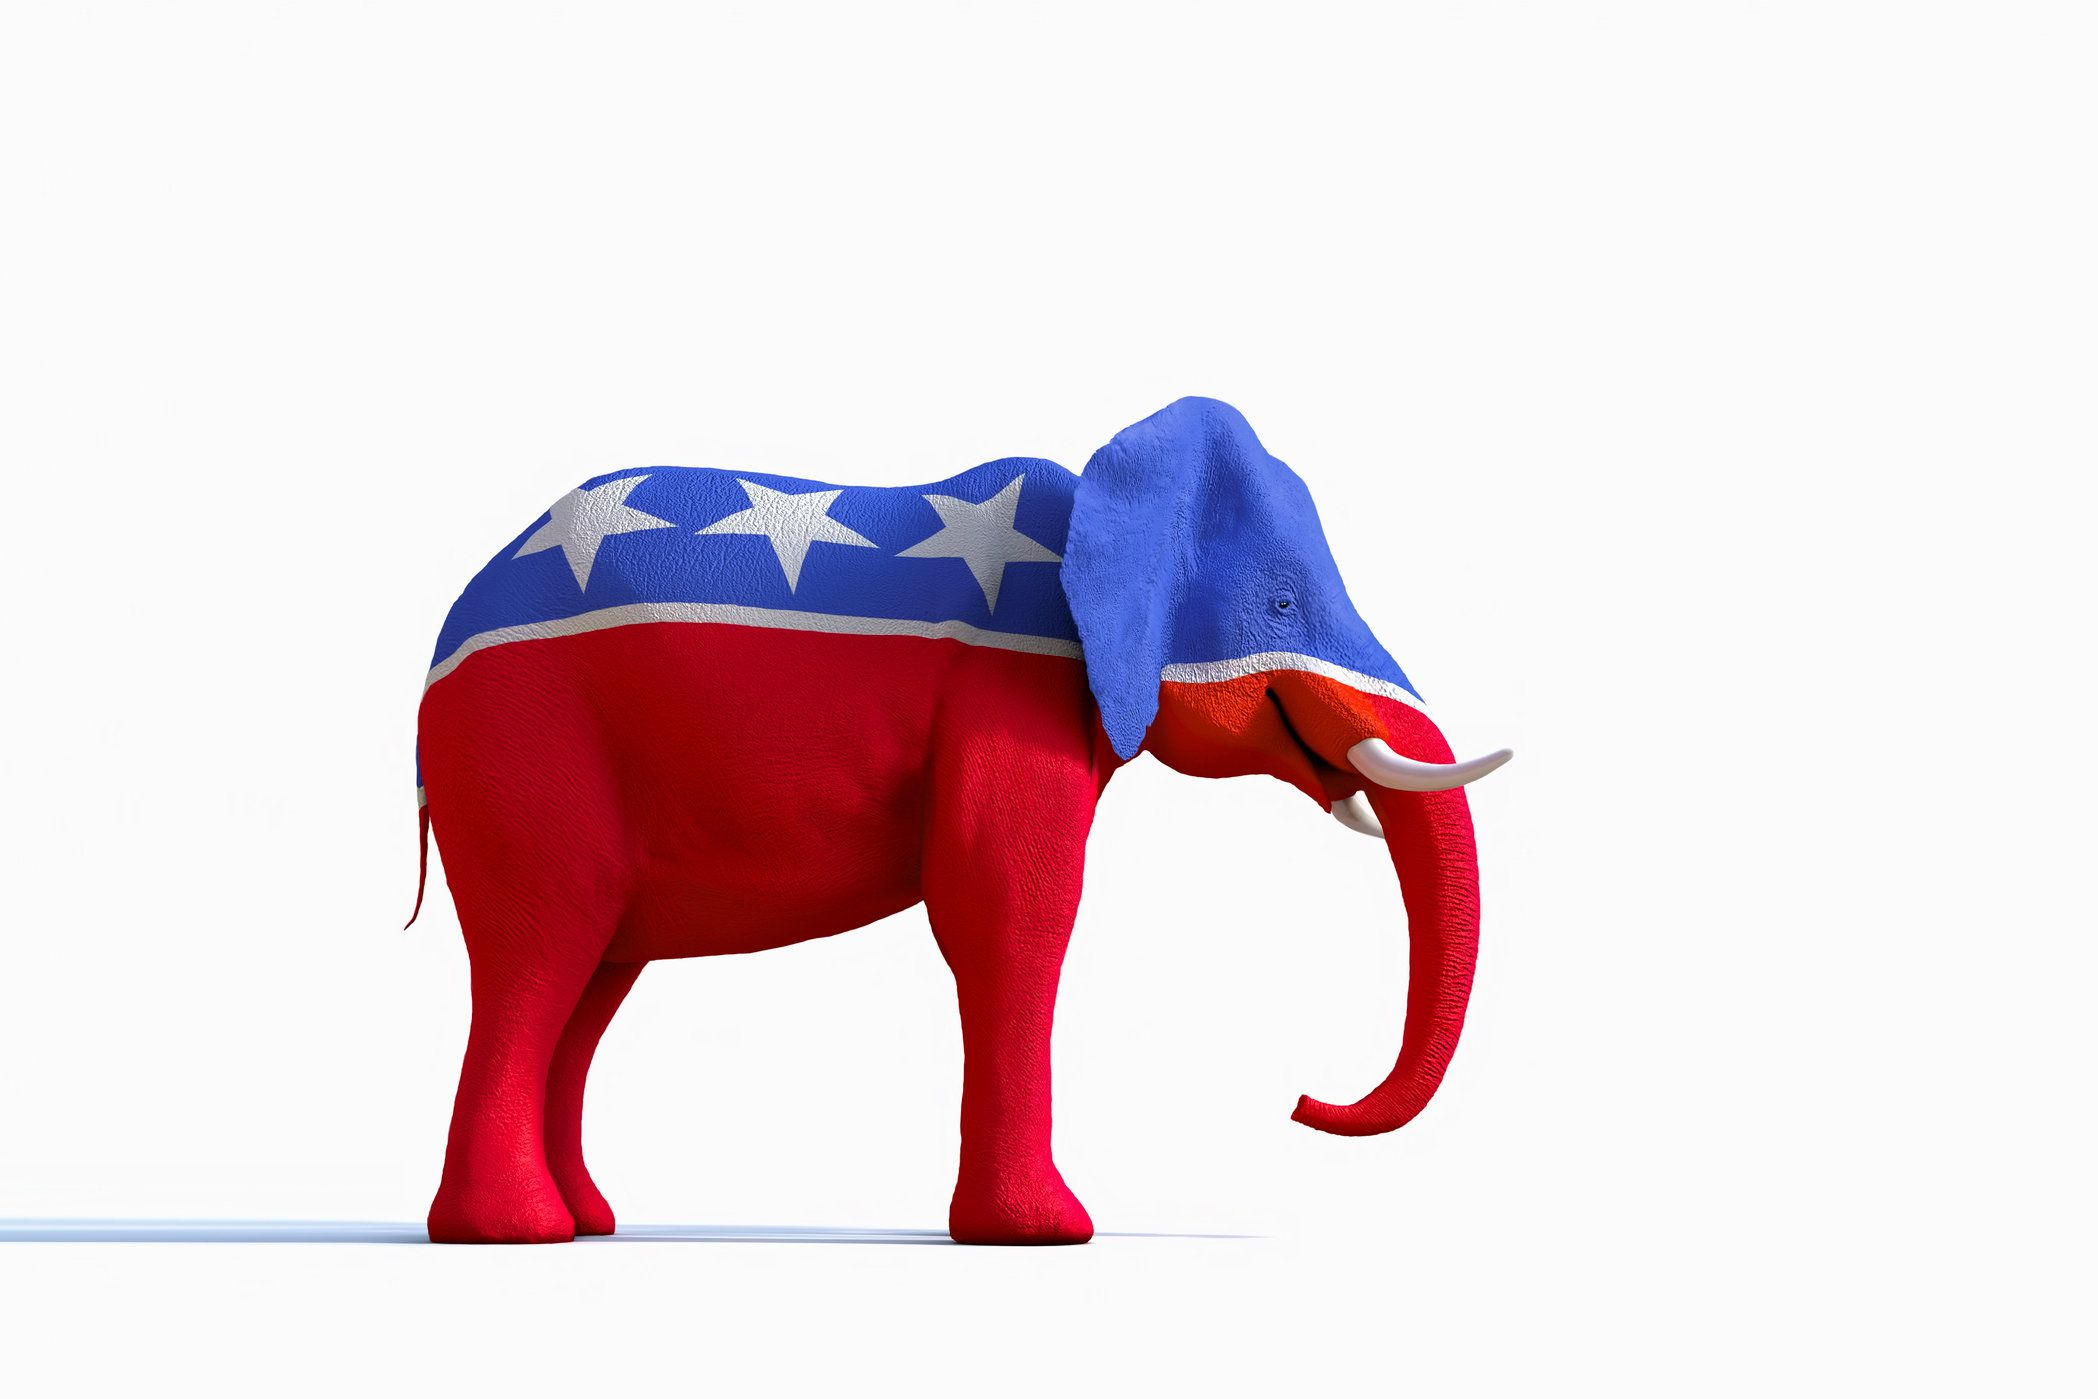 What Is the True Meaning of Republicanism?